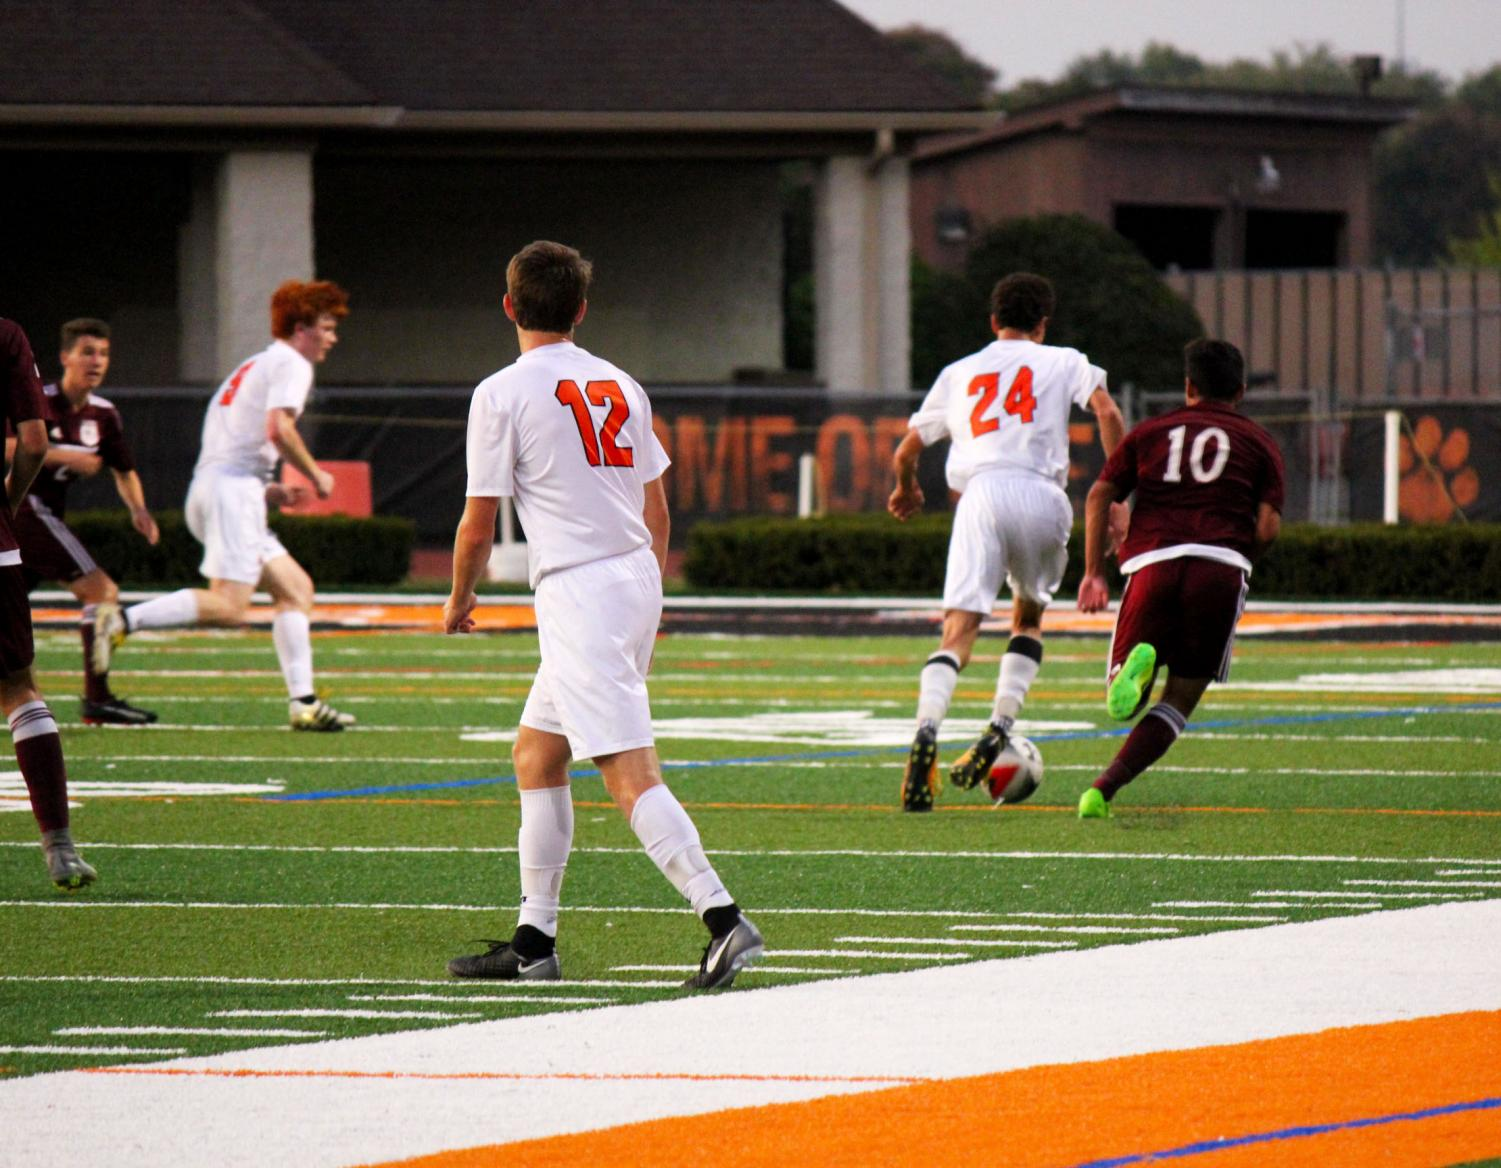 LHS boys varisty soccer had a 14-0-2 season record and was ranked as the number three team in the nation as of October 16.